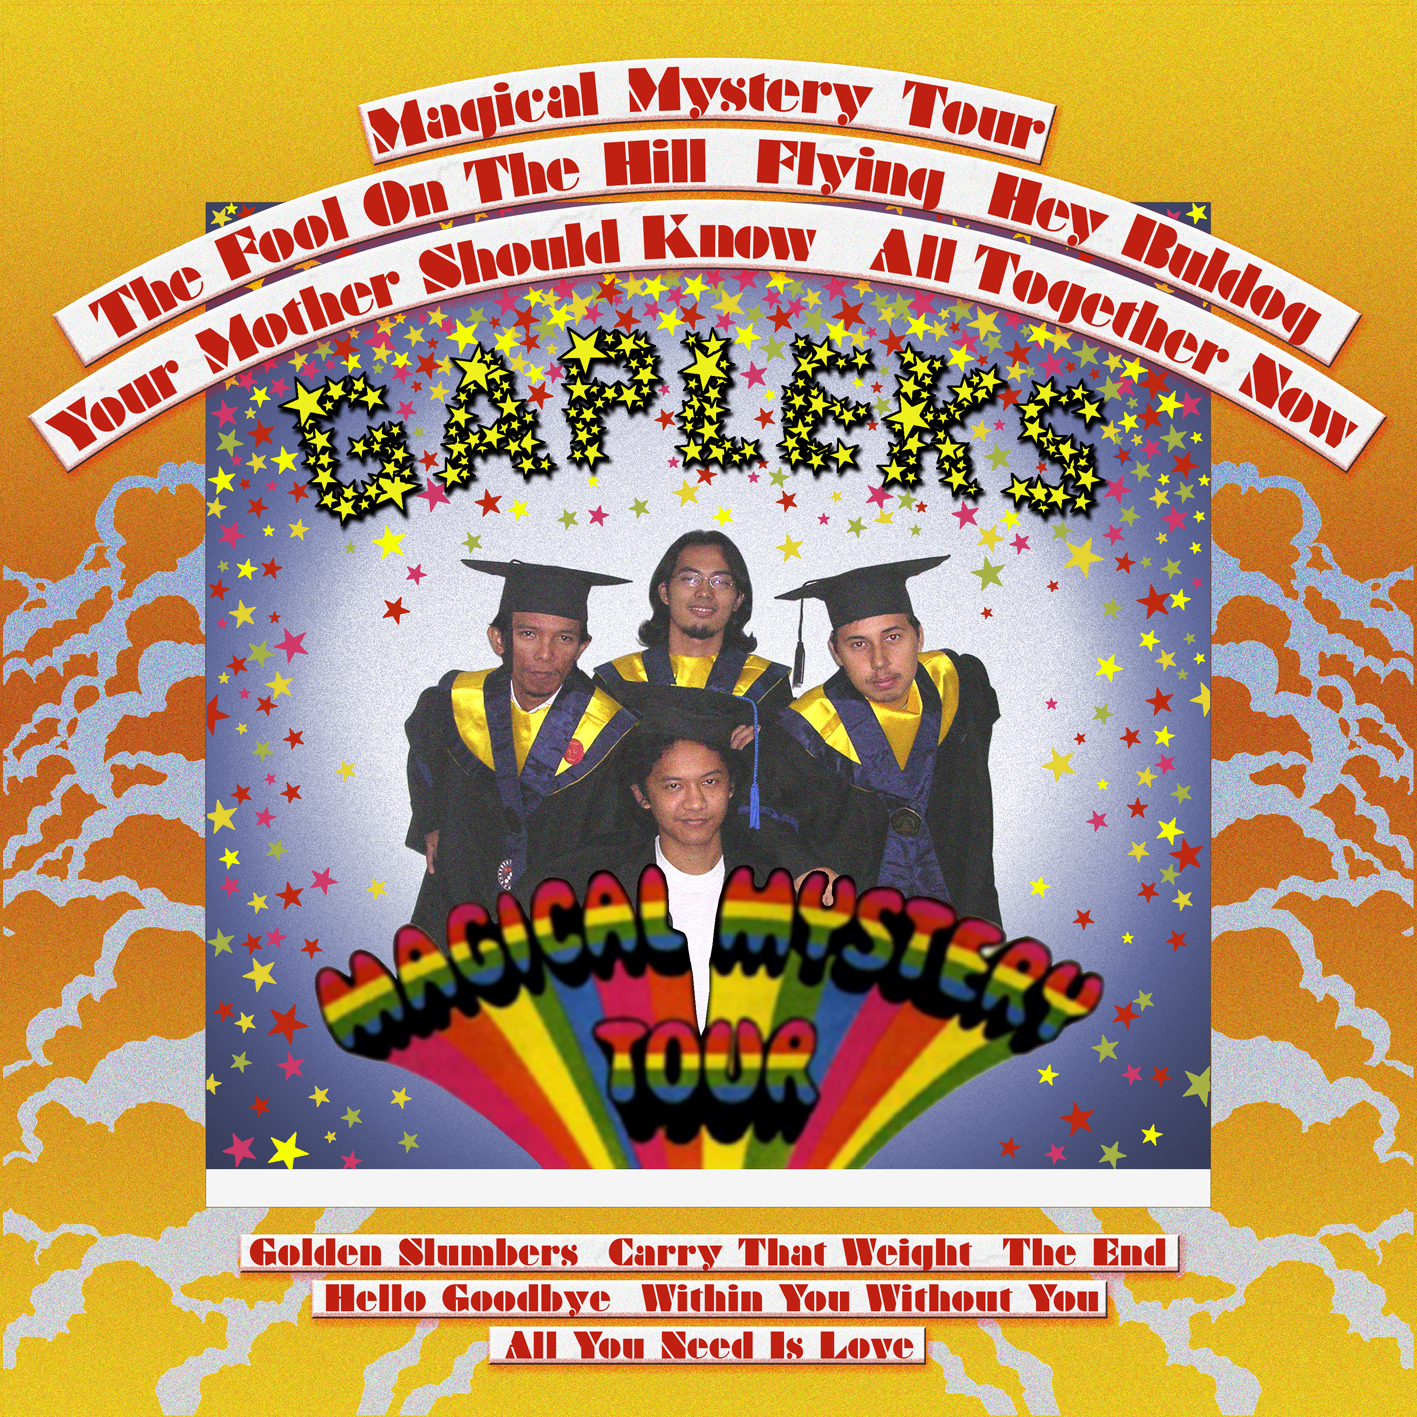 Beatles, The - Tragical History Tour / Dr. Pepper